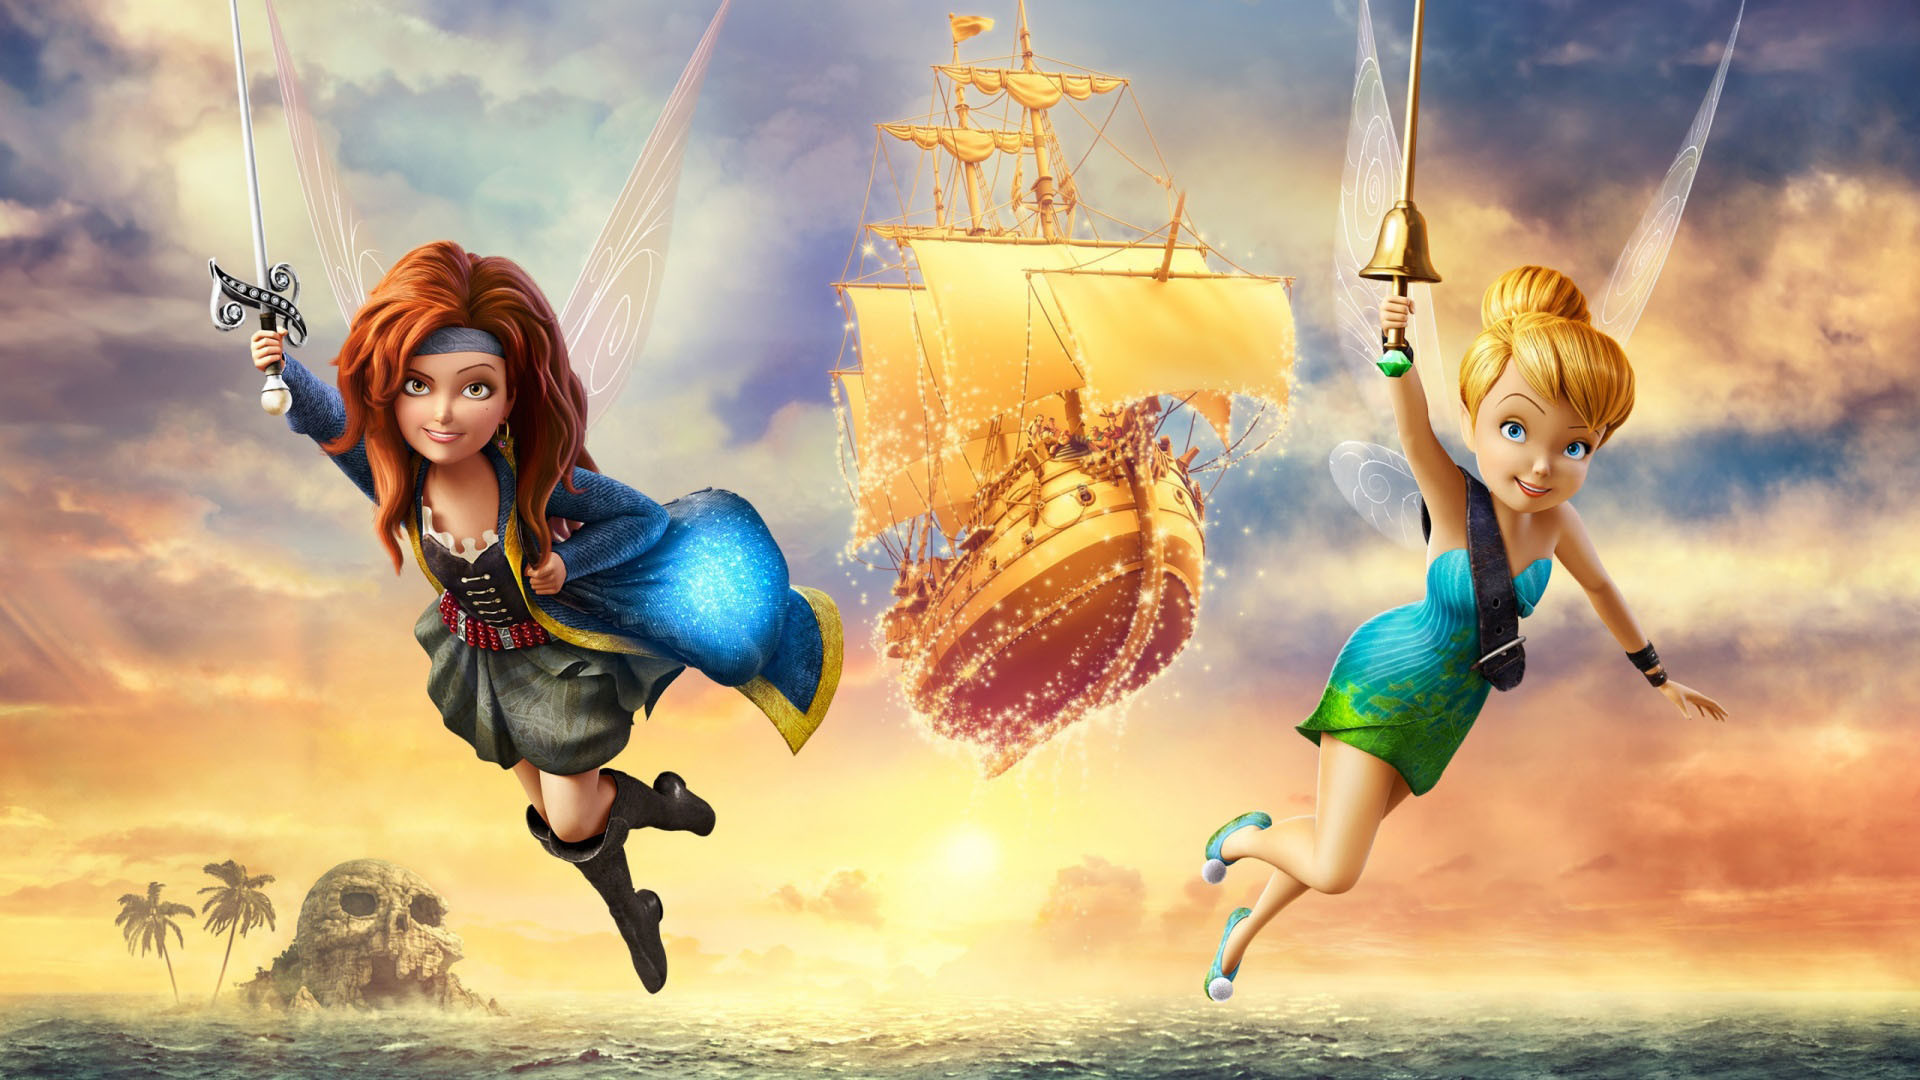 1920x1080 wallpaper.wiki-Movies-Tinkerbell-HD-Photos-PIC-WPE0010405